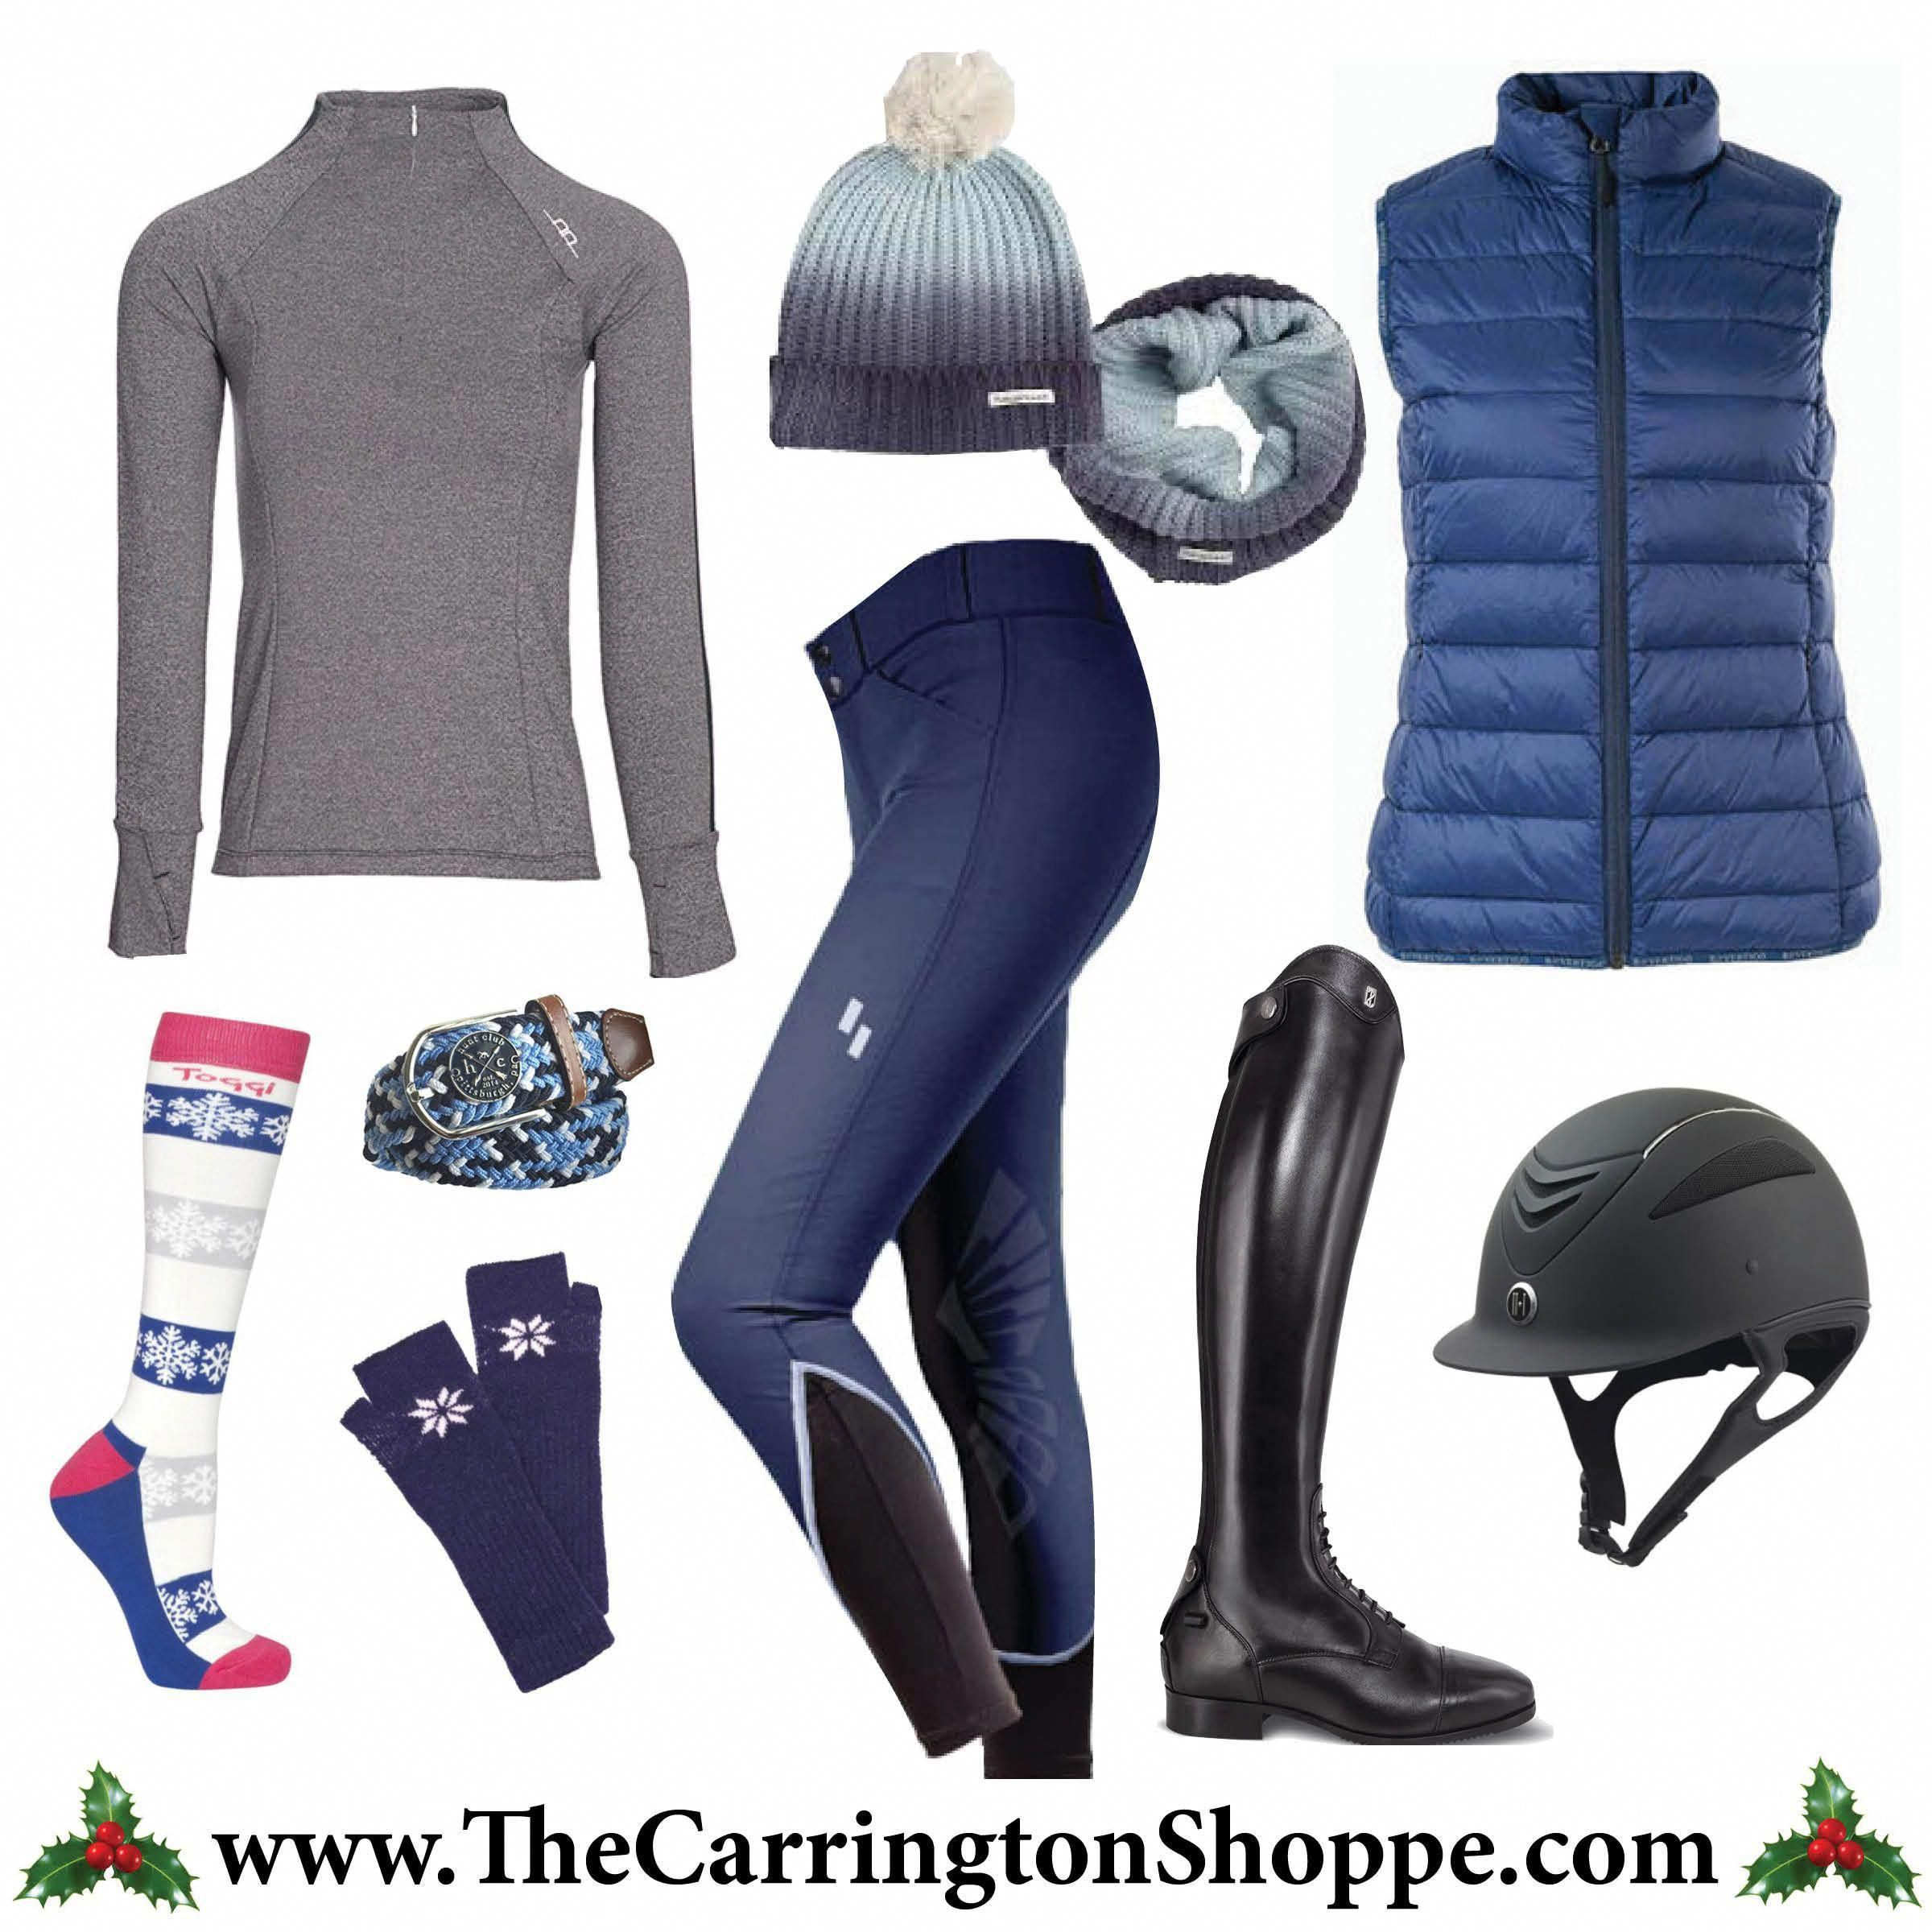 #equestriangearbeautiful #horseridingstyle,equestrianfashion,equestrianlifestyle...